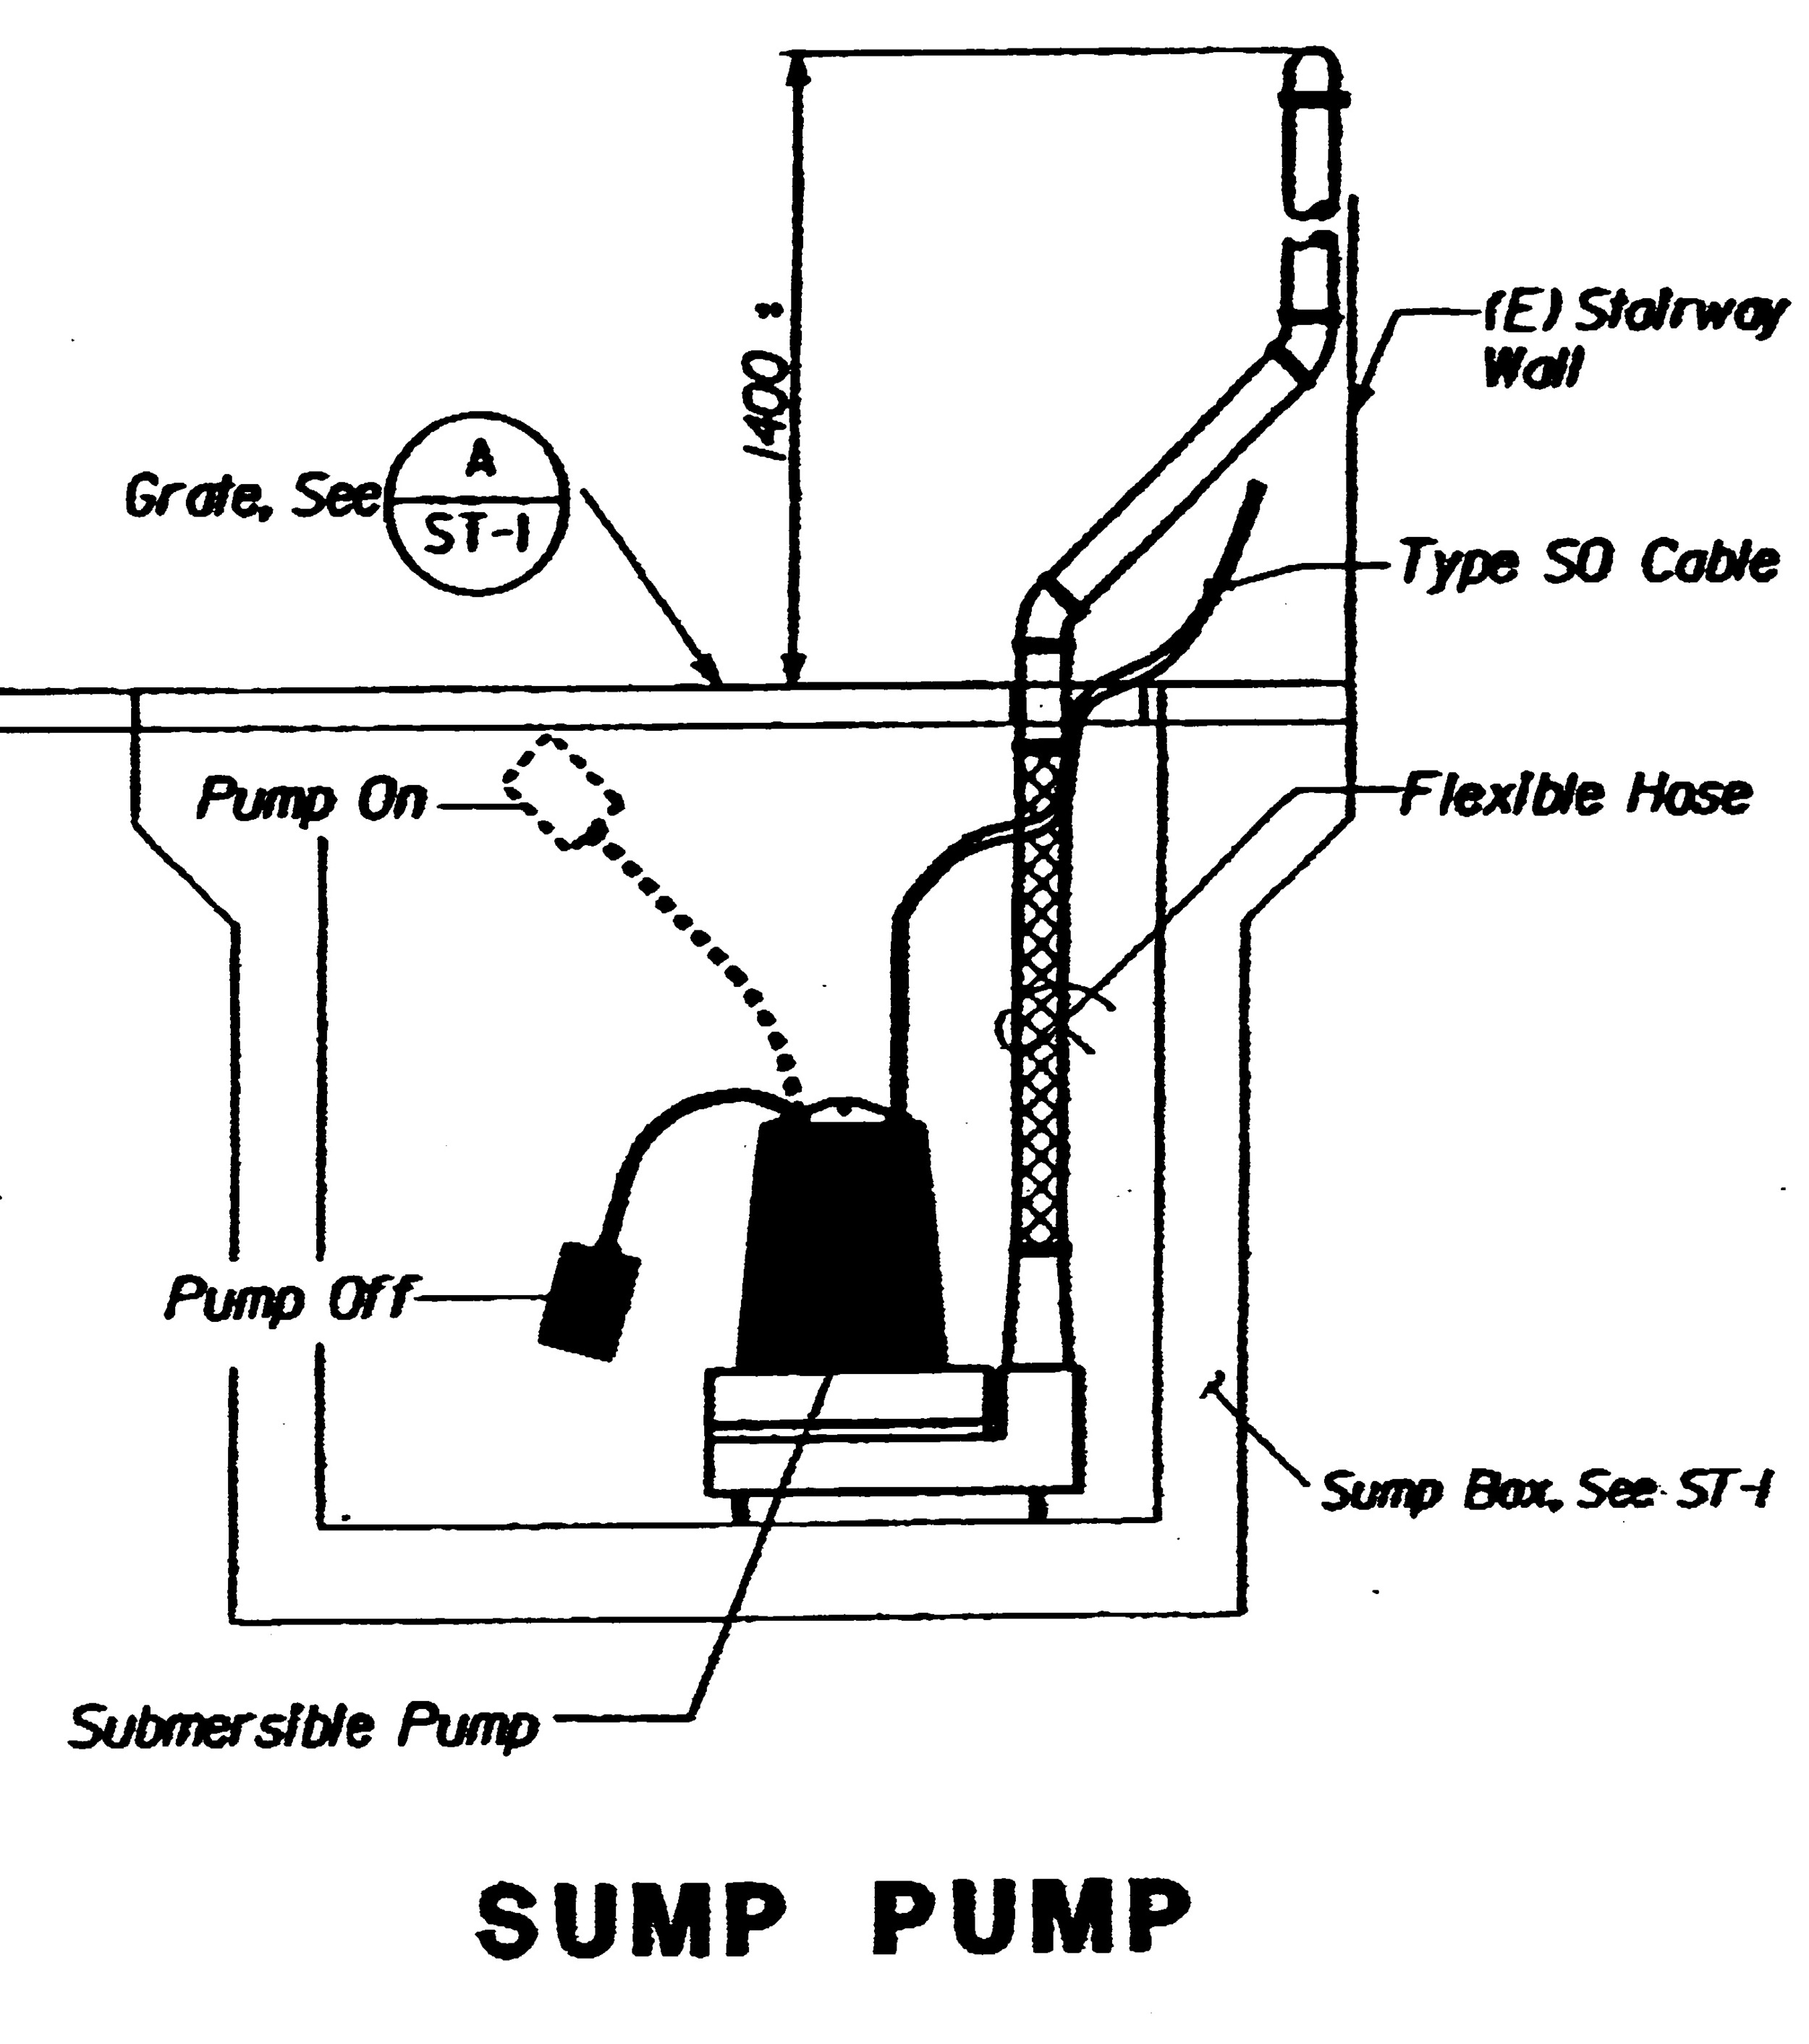 The pump in the Little Tunnel, added by Caltrans in 1998 at BOCA's request